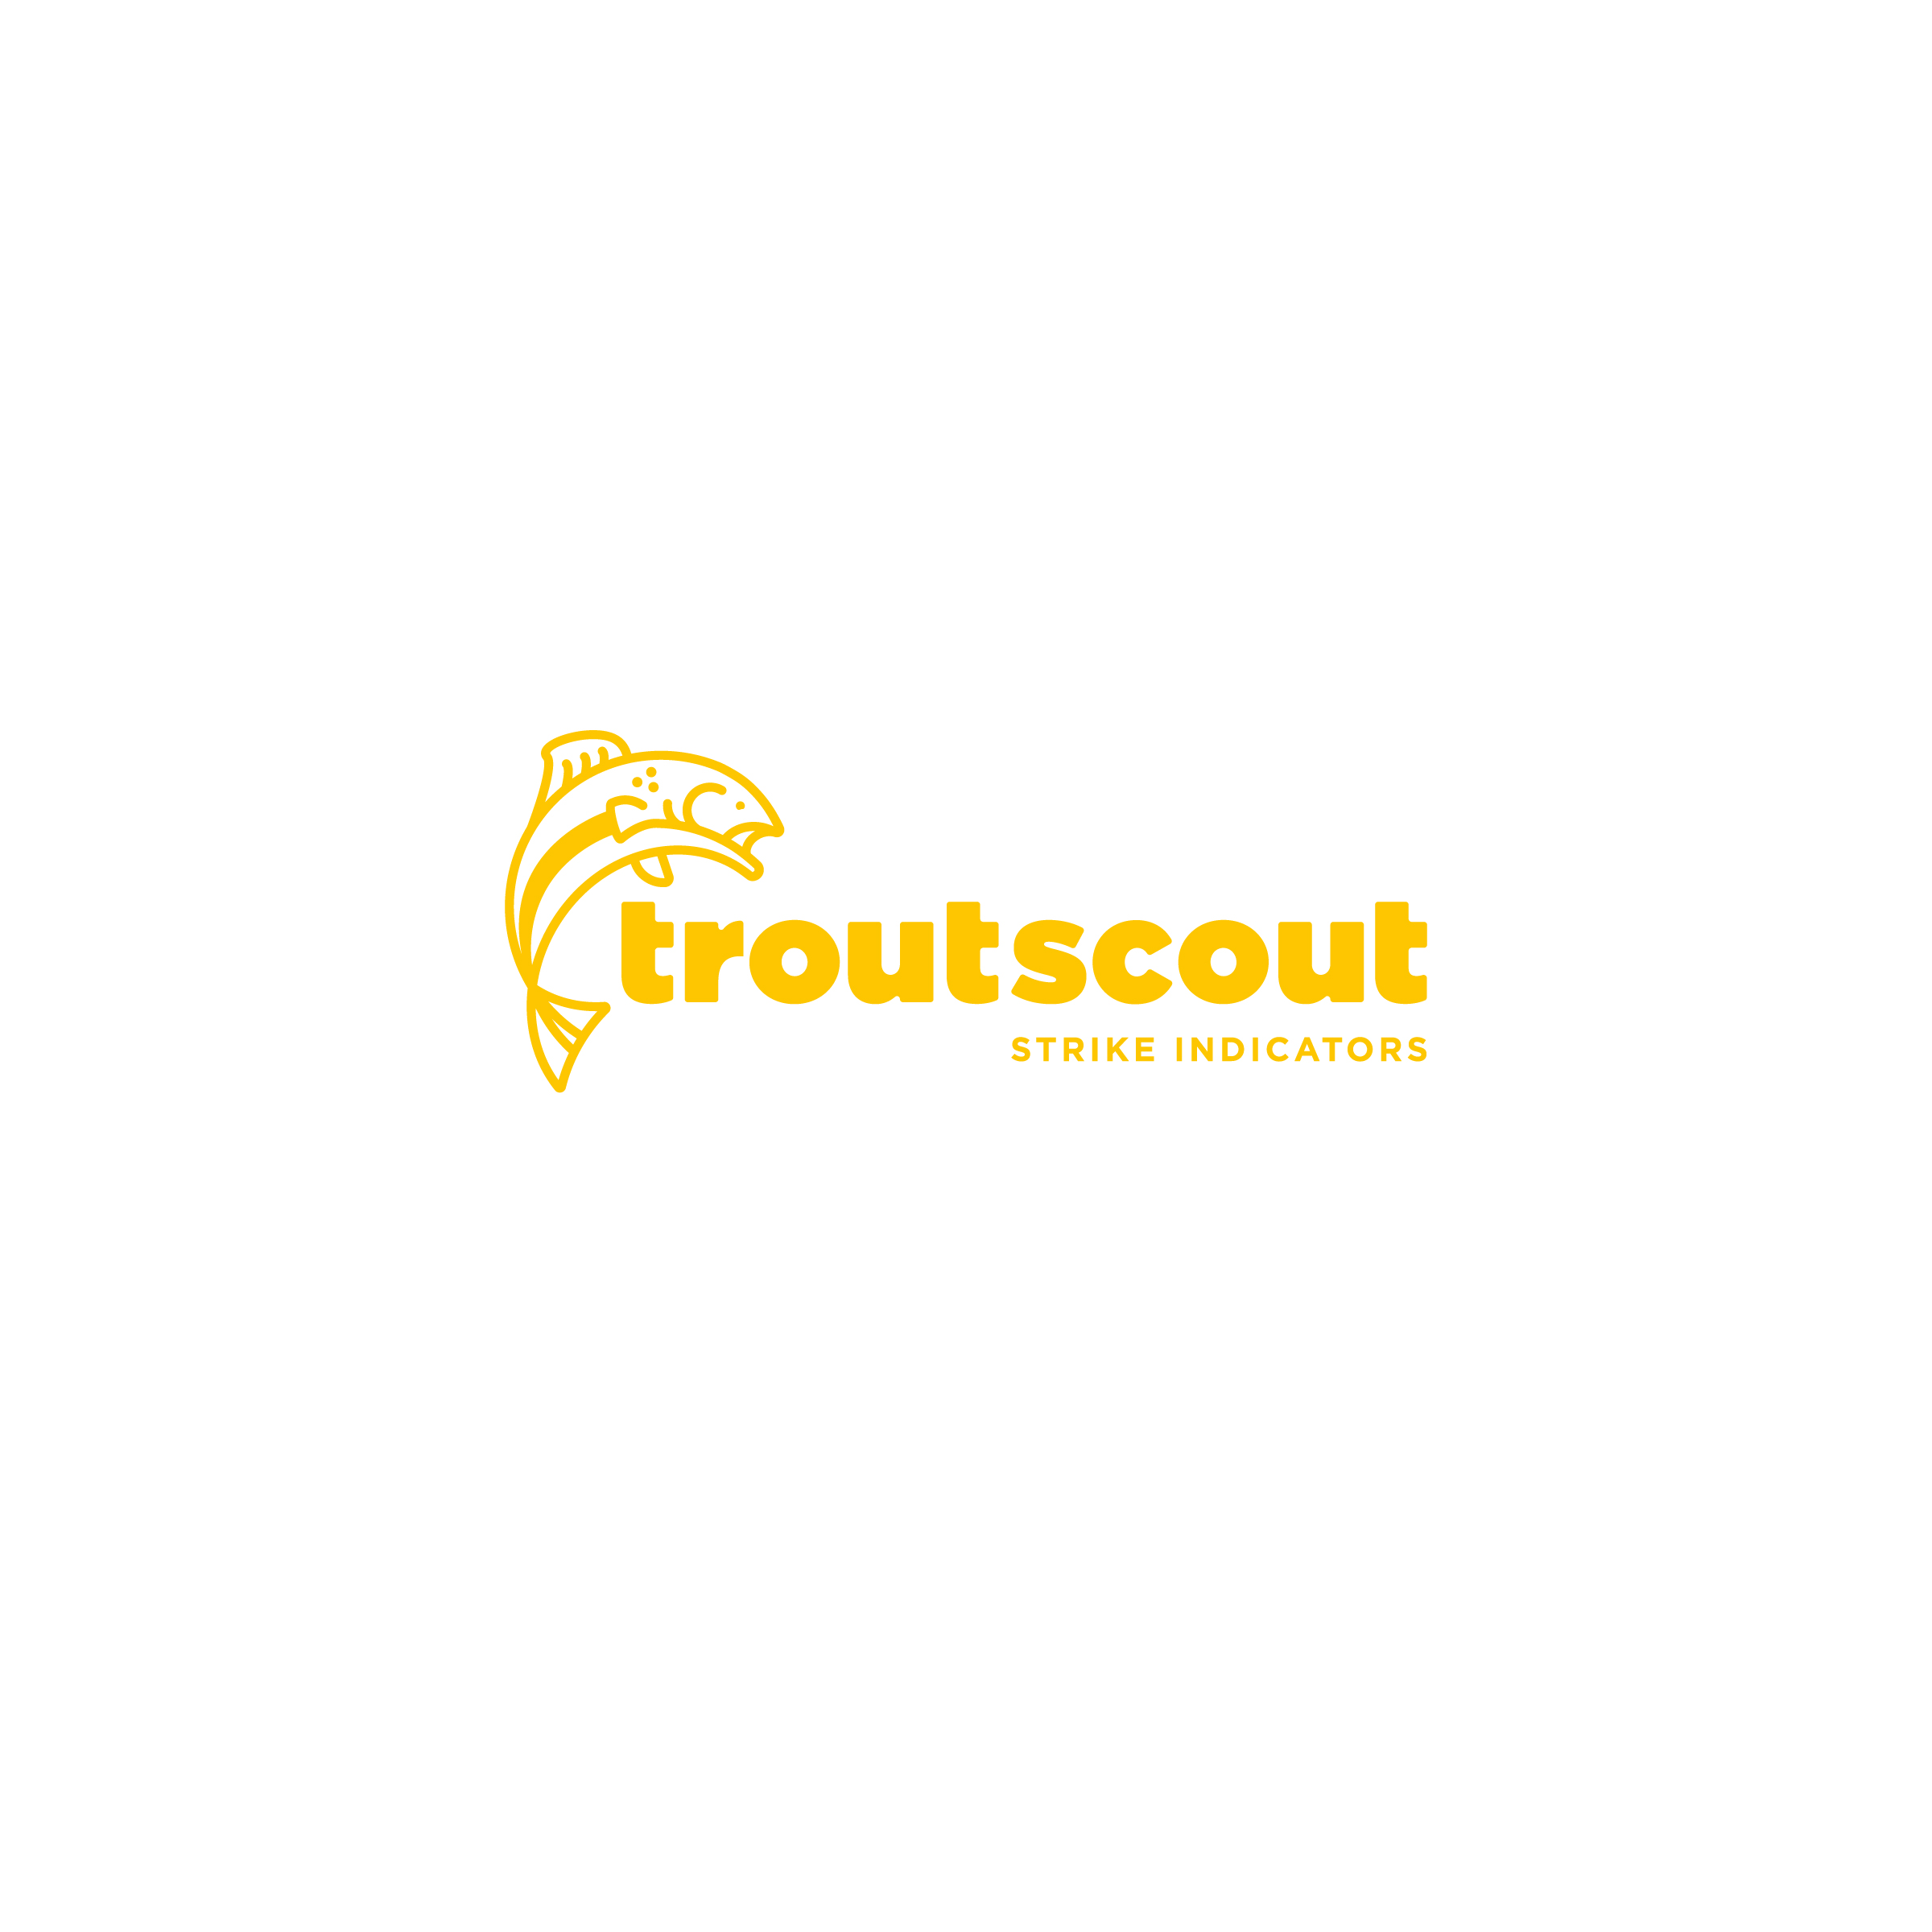 TroutScout_Yellow_Hrzt.jpg